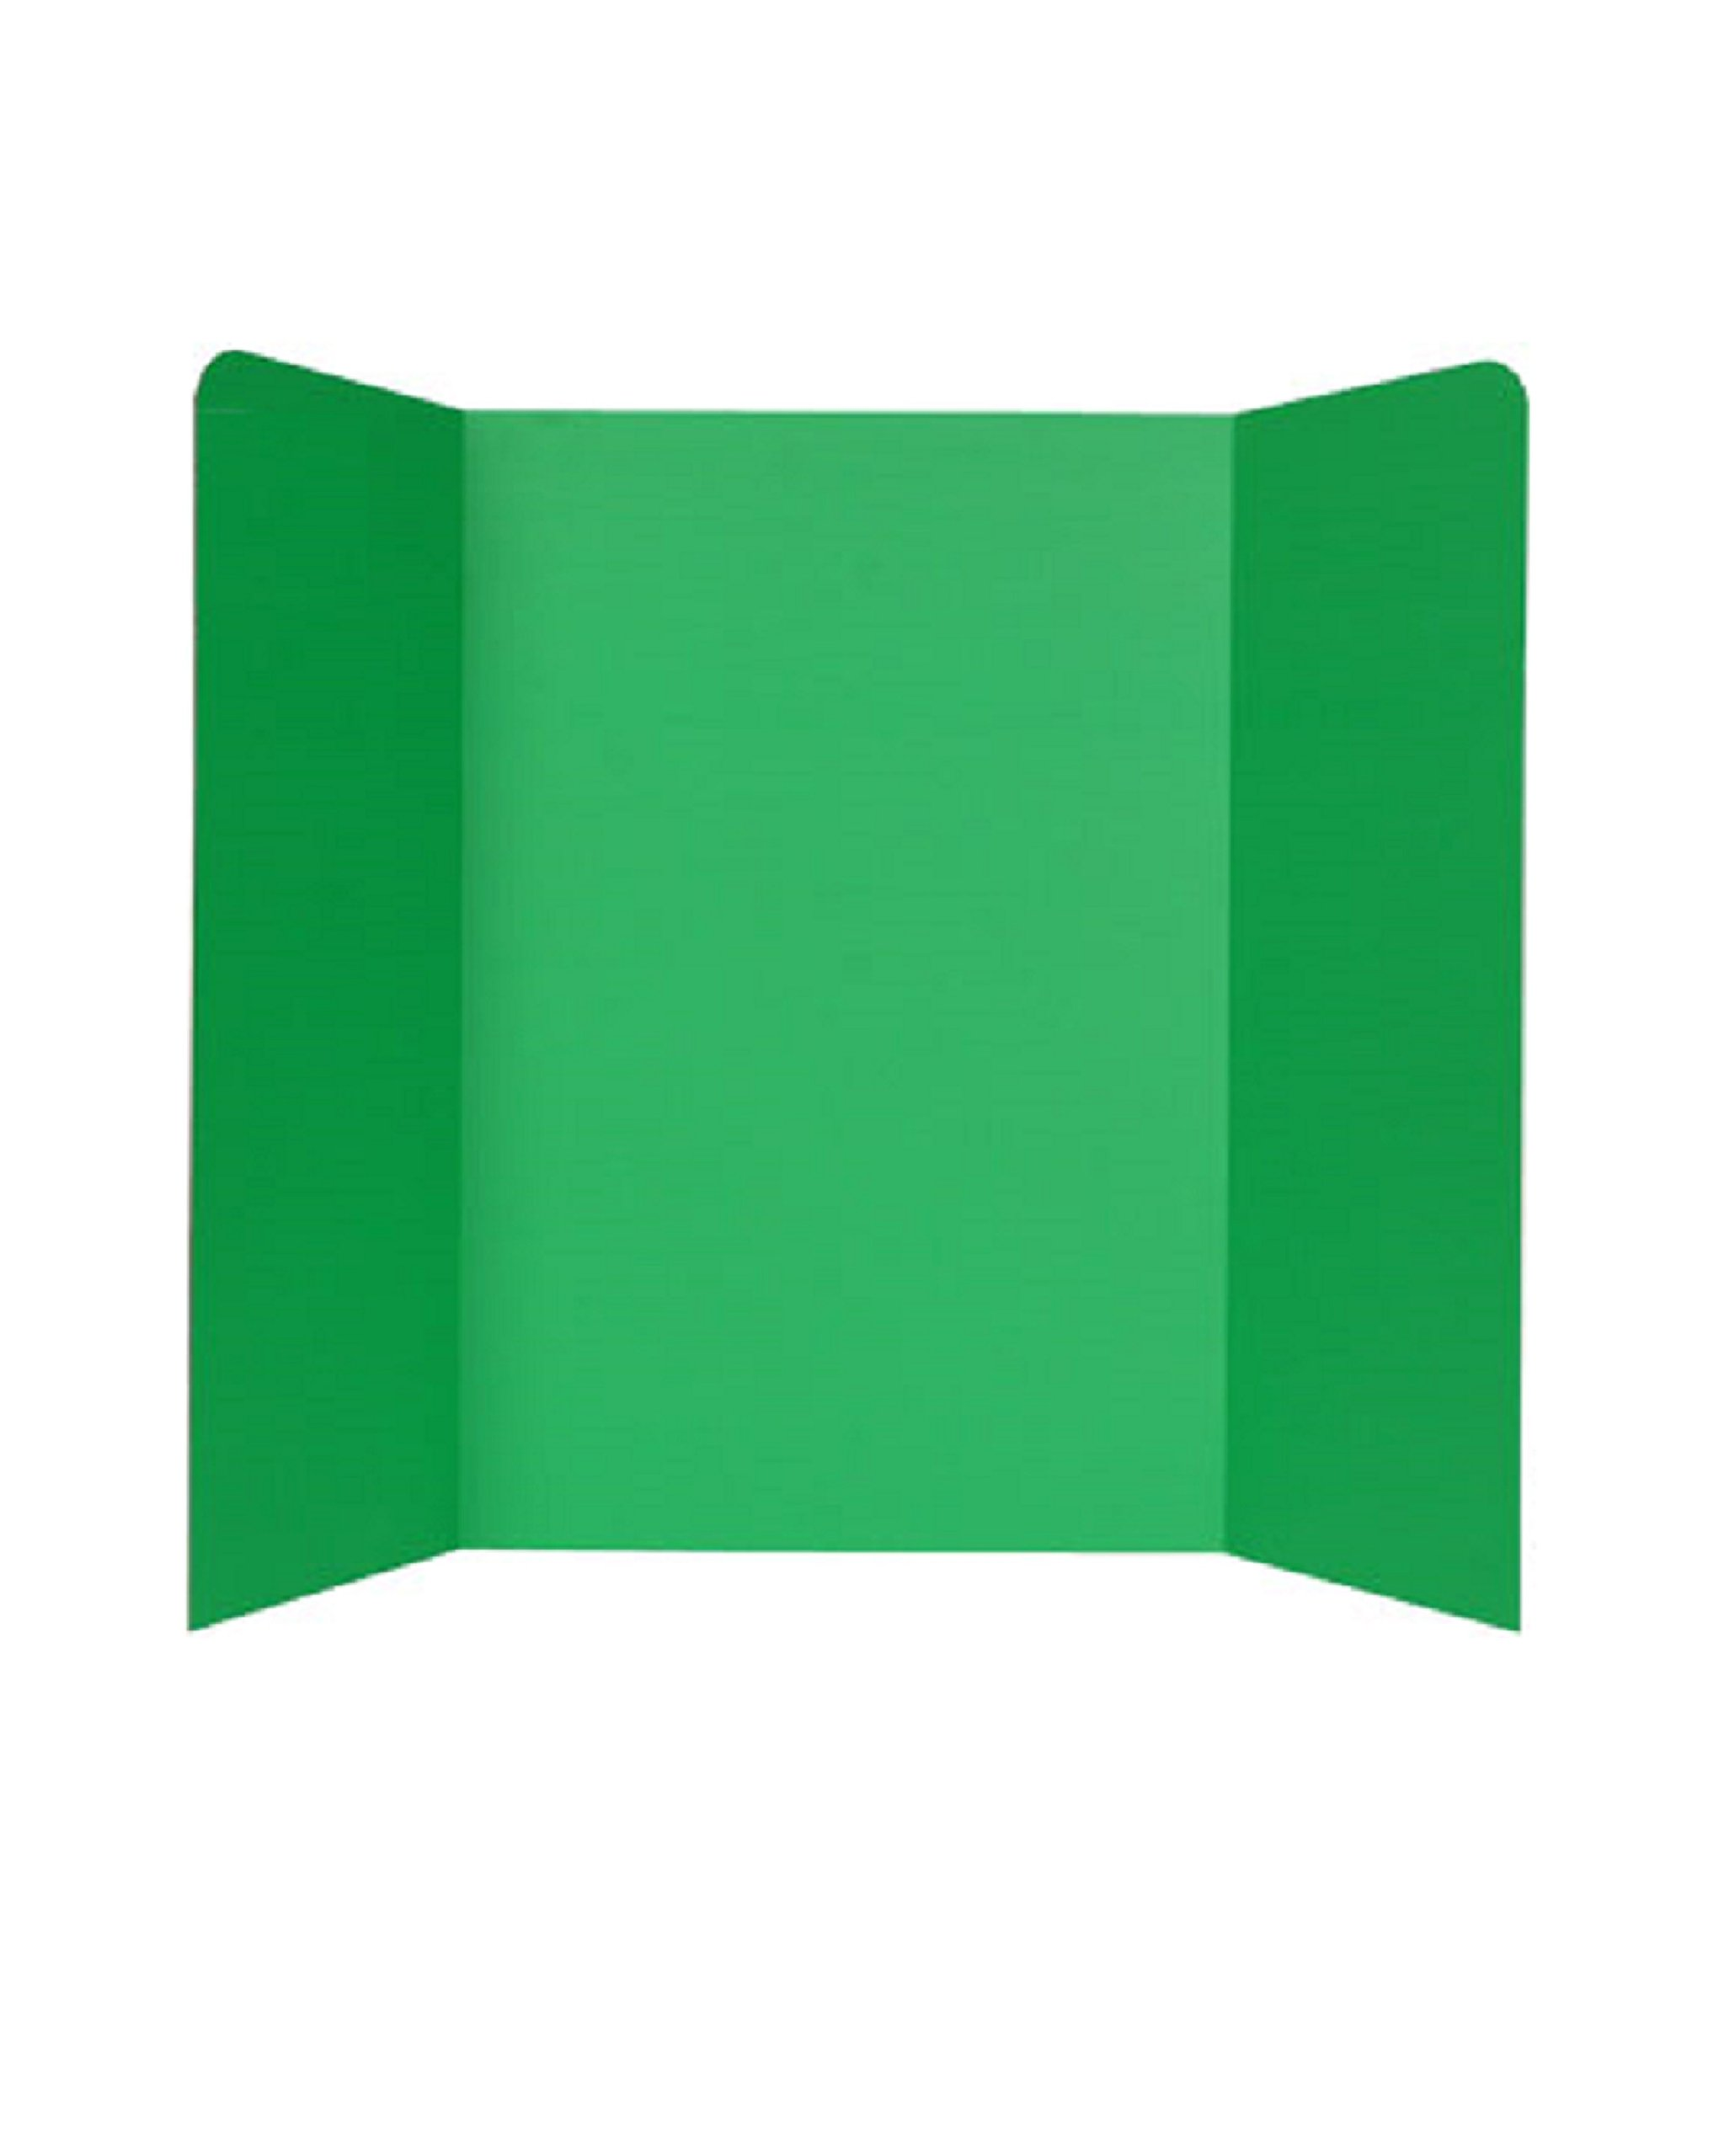 Tri-Fold Corrugated Presentation Boards (48 x 36 in; Pack of 10 - Green)